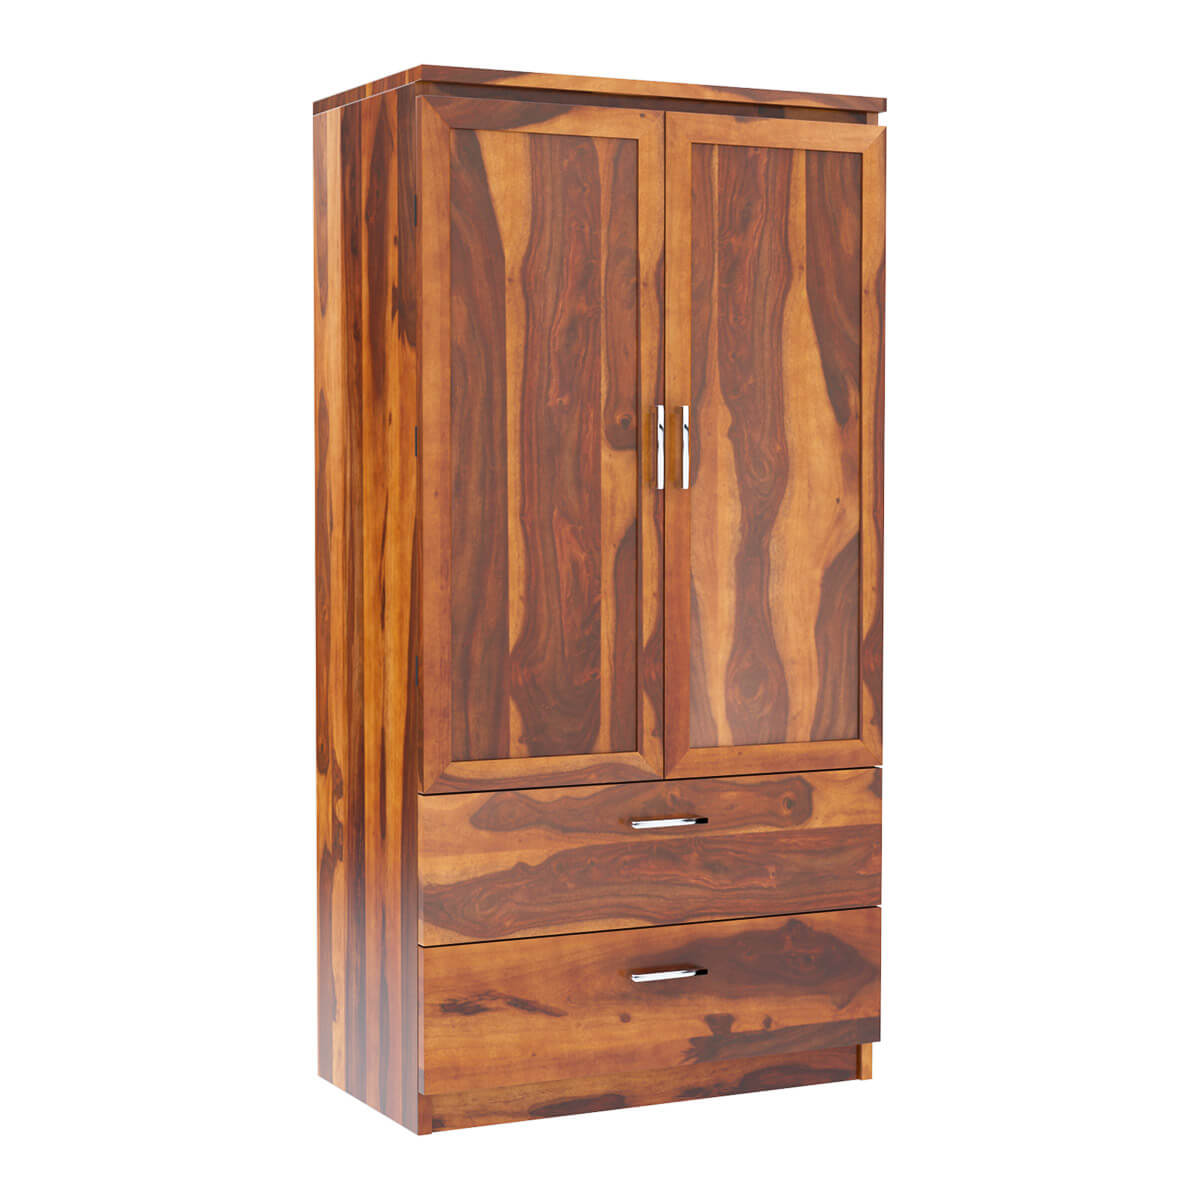 Caspian Rustic Solid Wood Wardrobe Armoire With Drawers